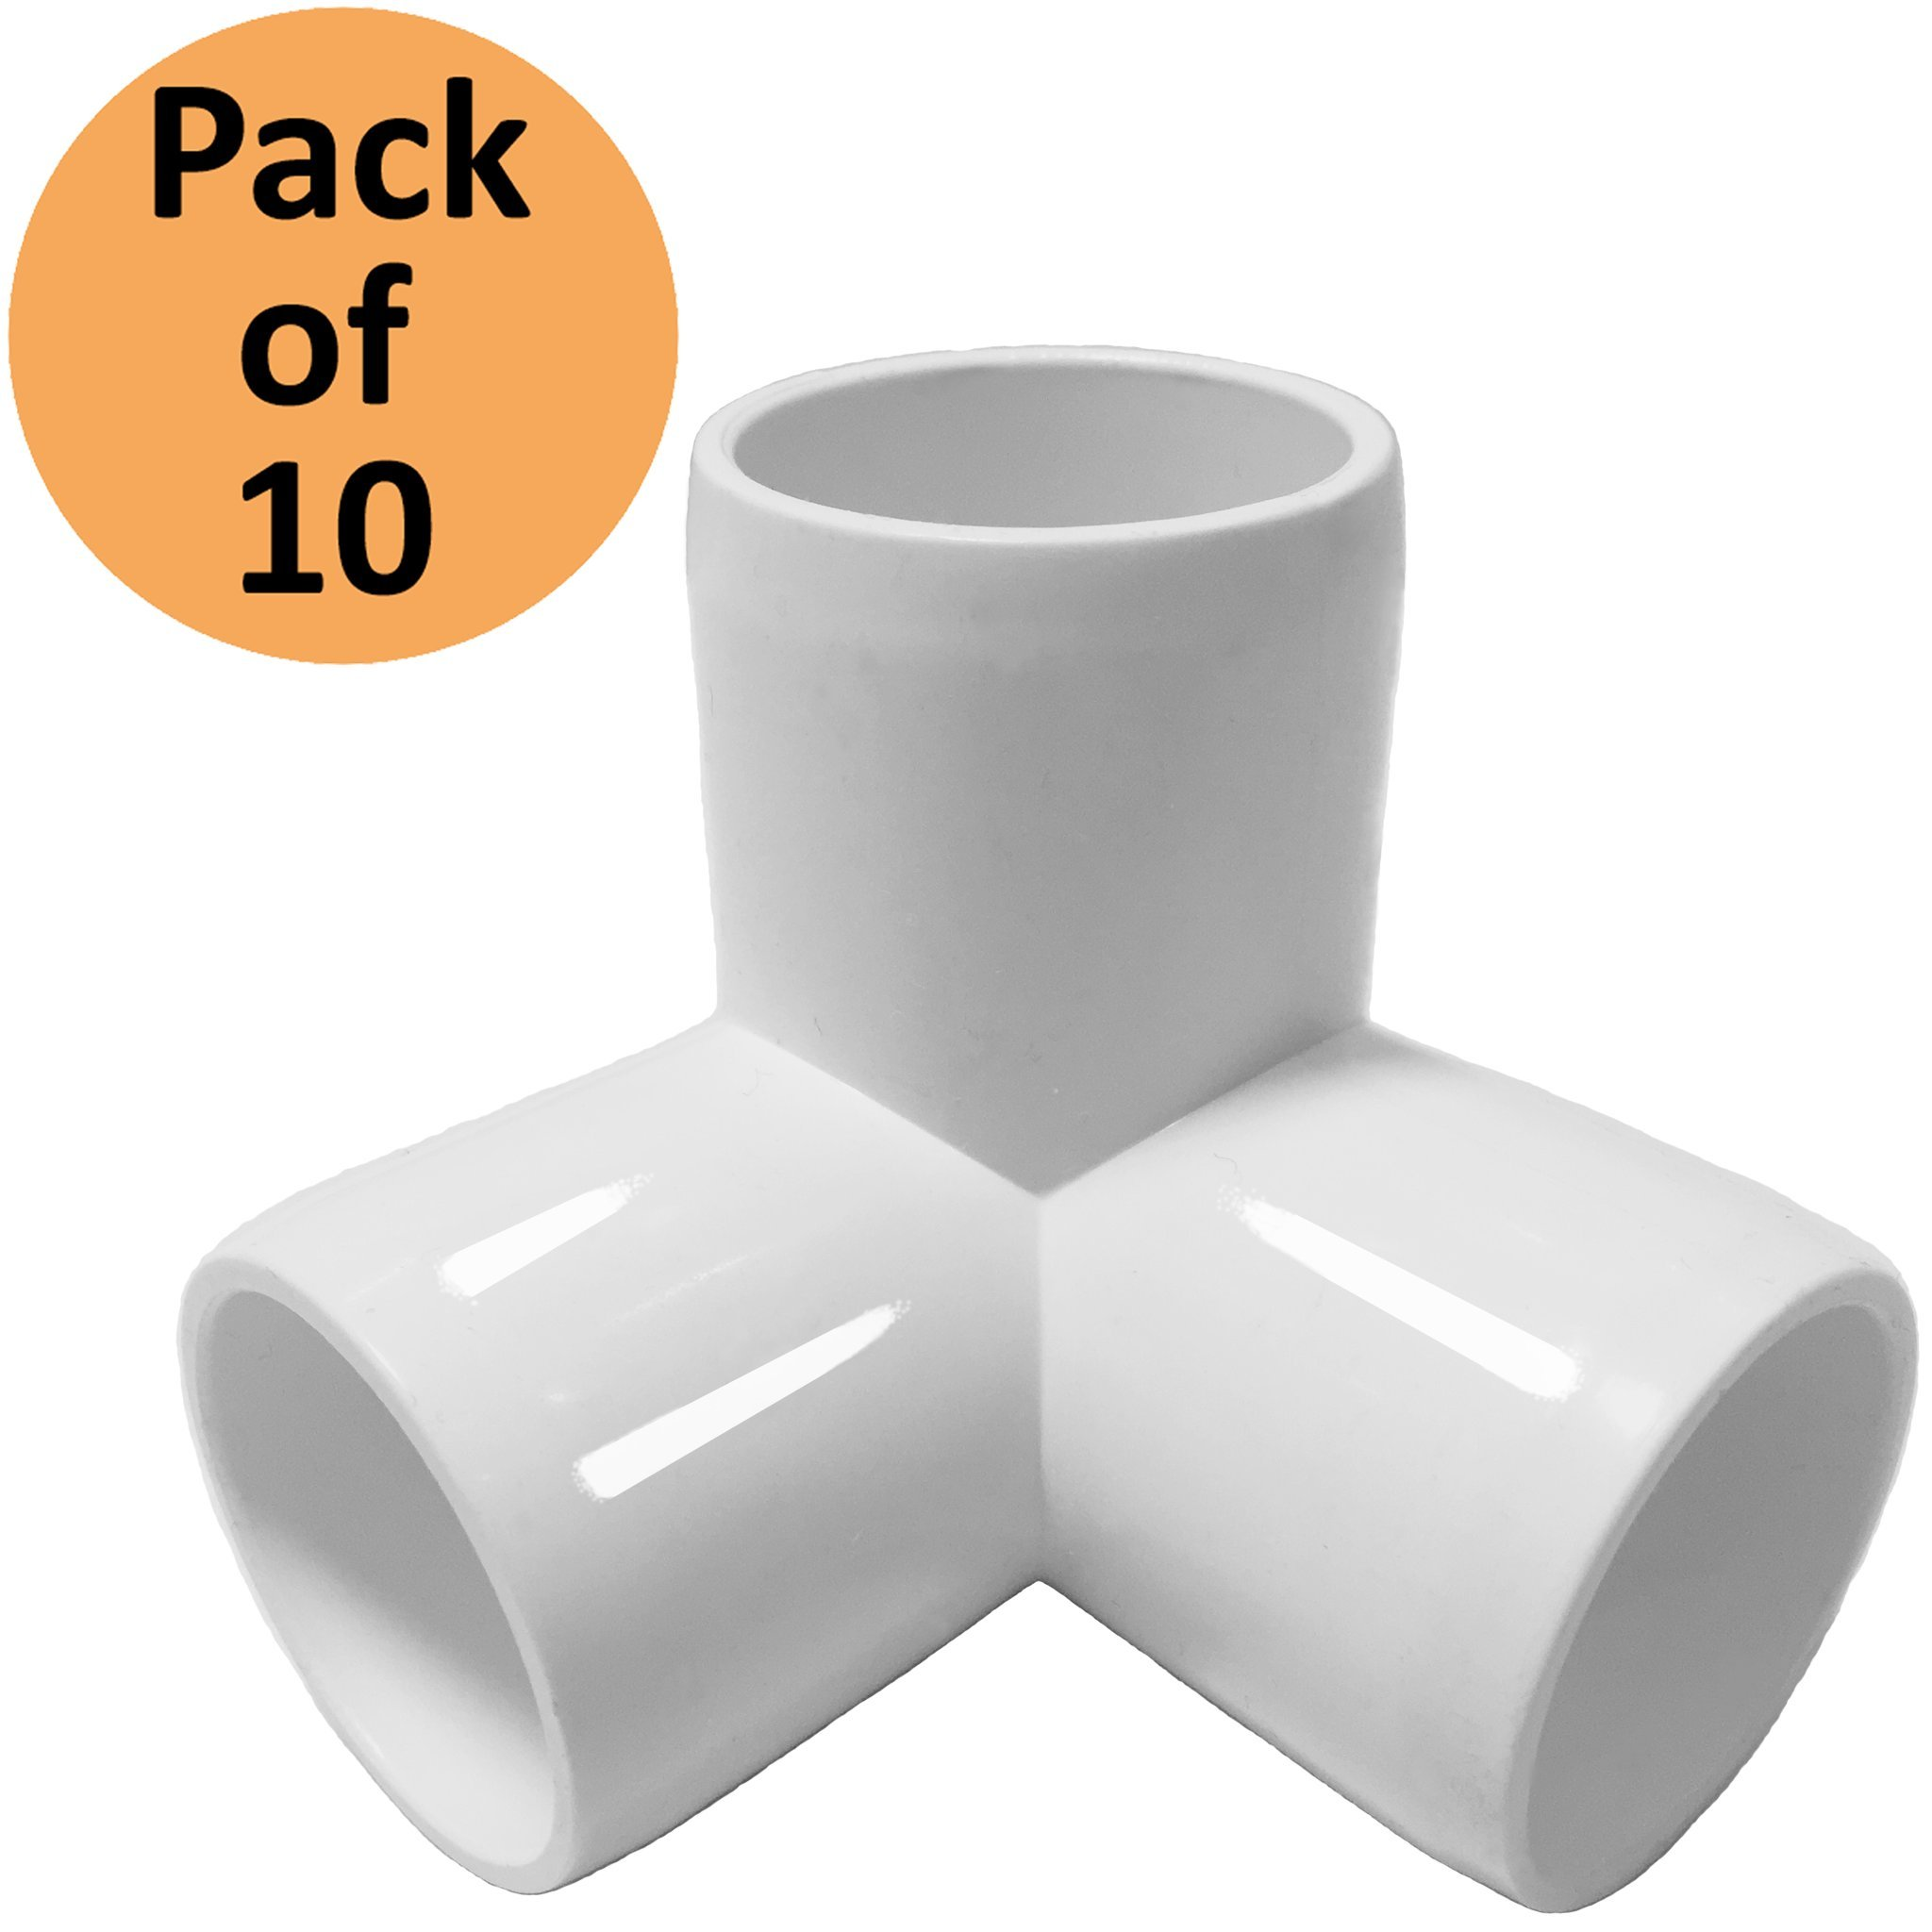 SELLERS360 3Way 3/4 inch PVC Fitting Elbow - Build Heavy Duty PVC Furniture - PVC three quarter Elbow Fittings [Pack of 10] by SELLERS360